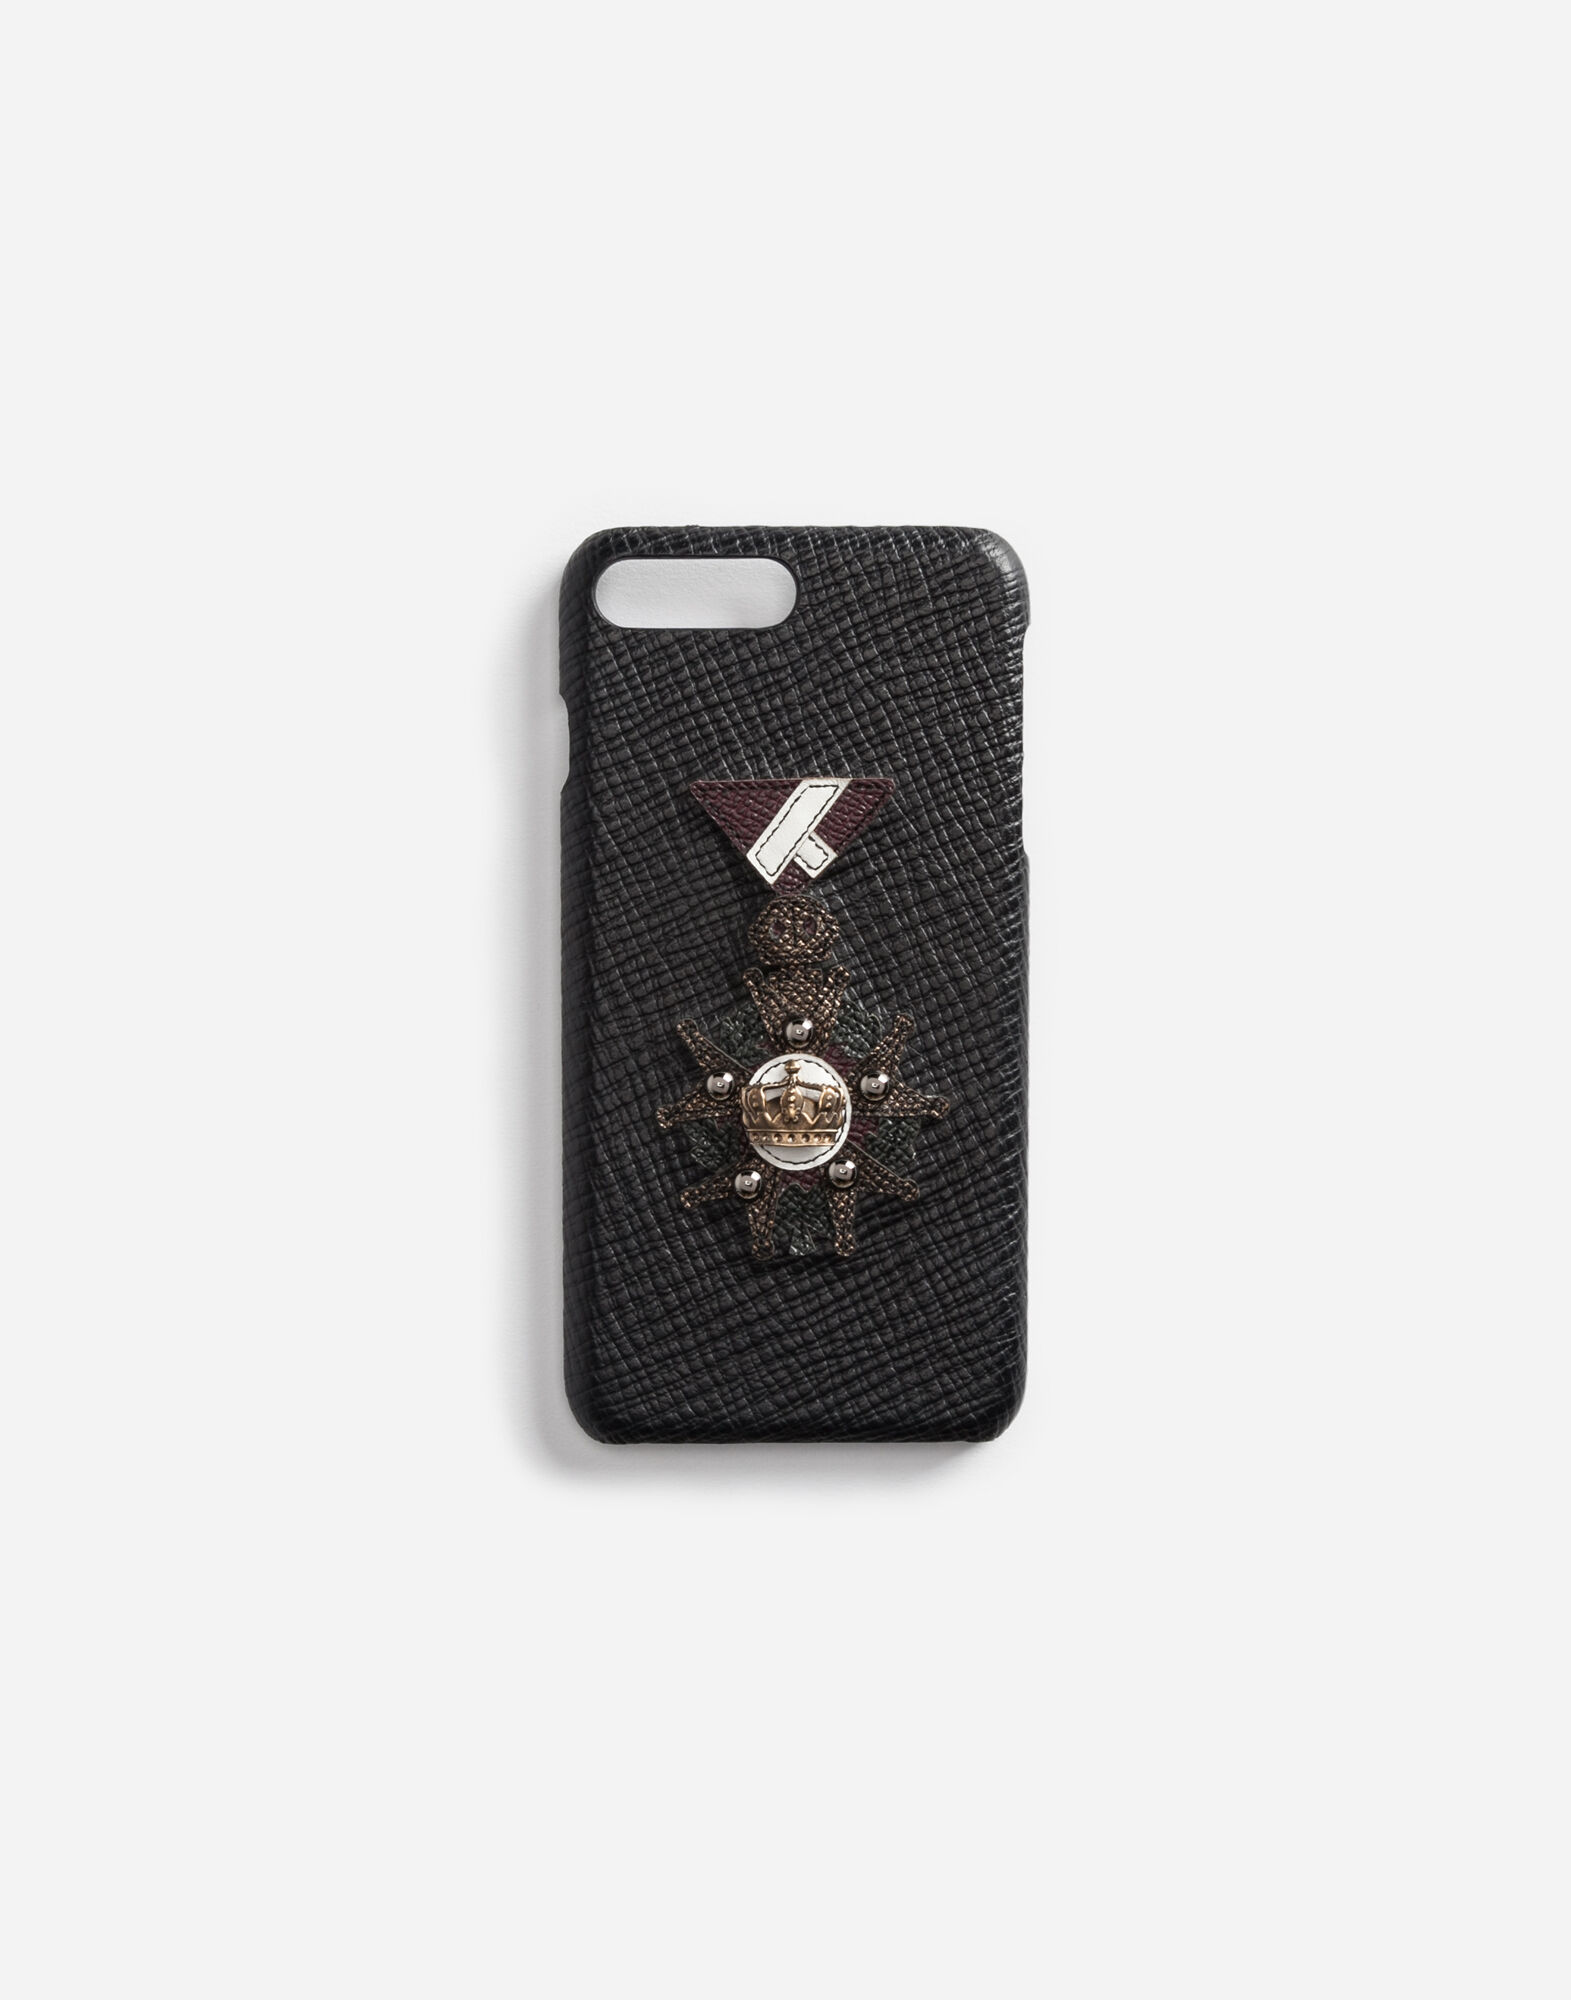 LEATHER IPHONE 7 PLUS COVER WITH PATCH